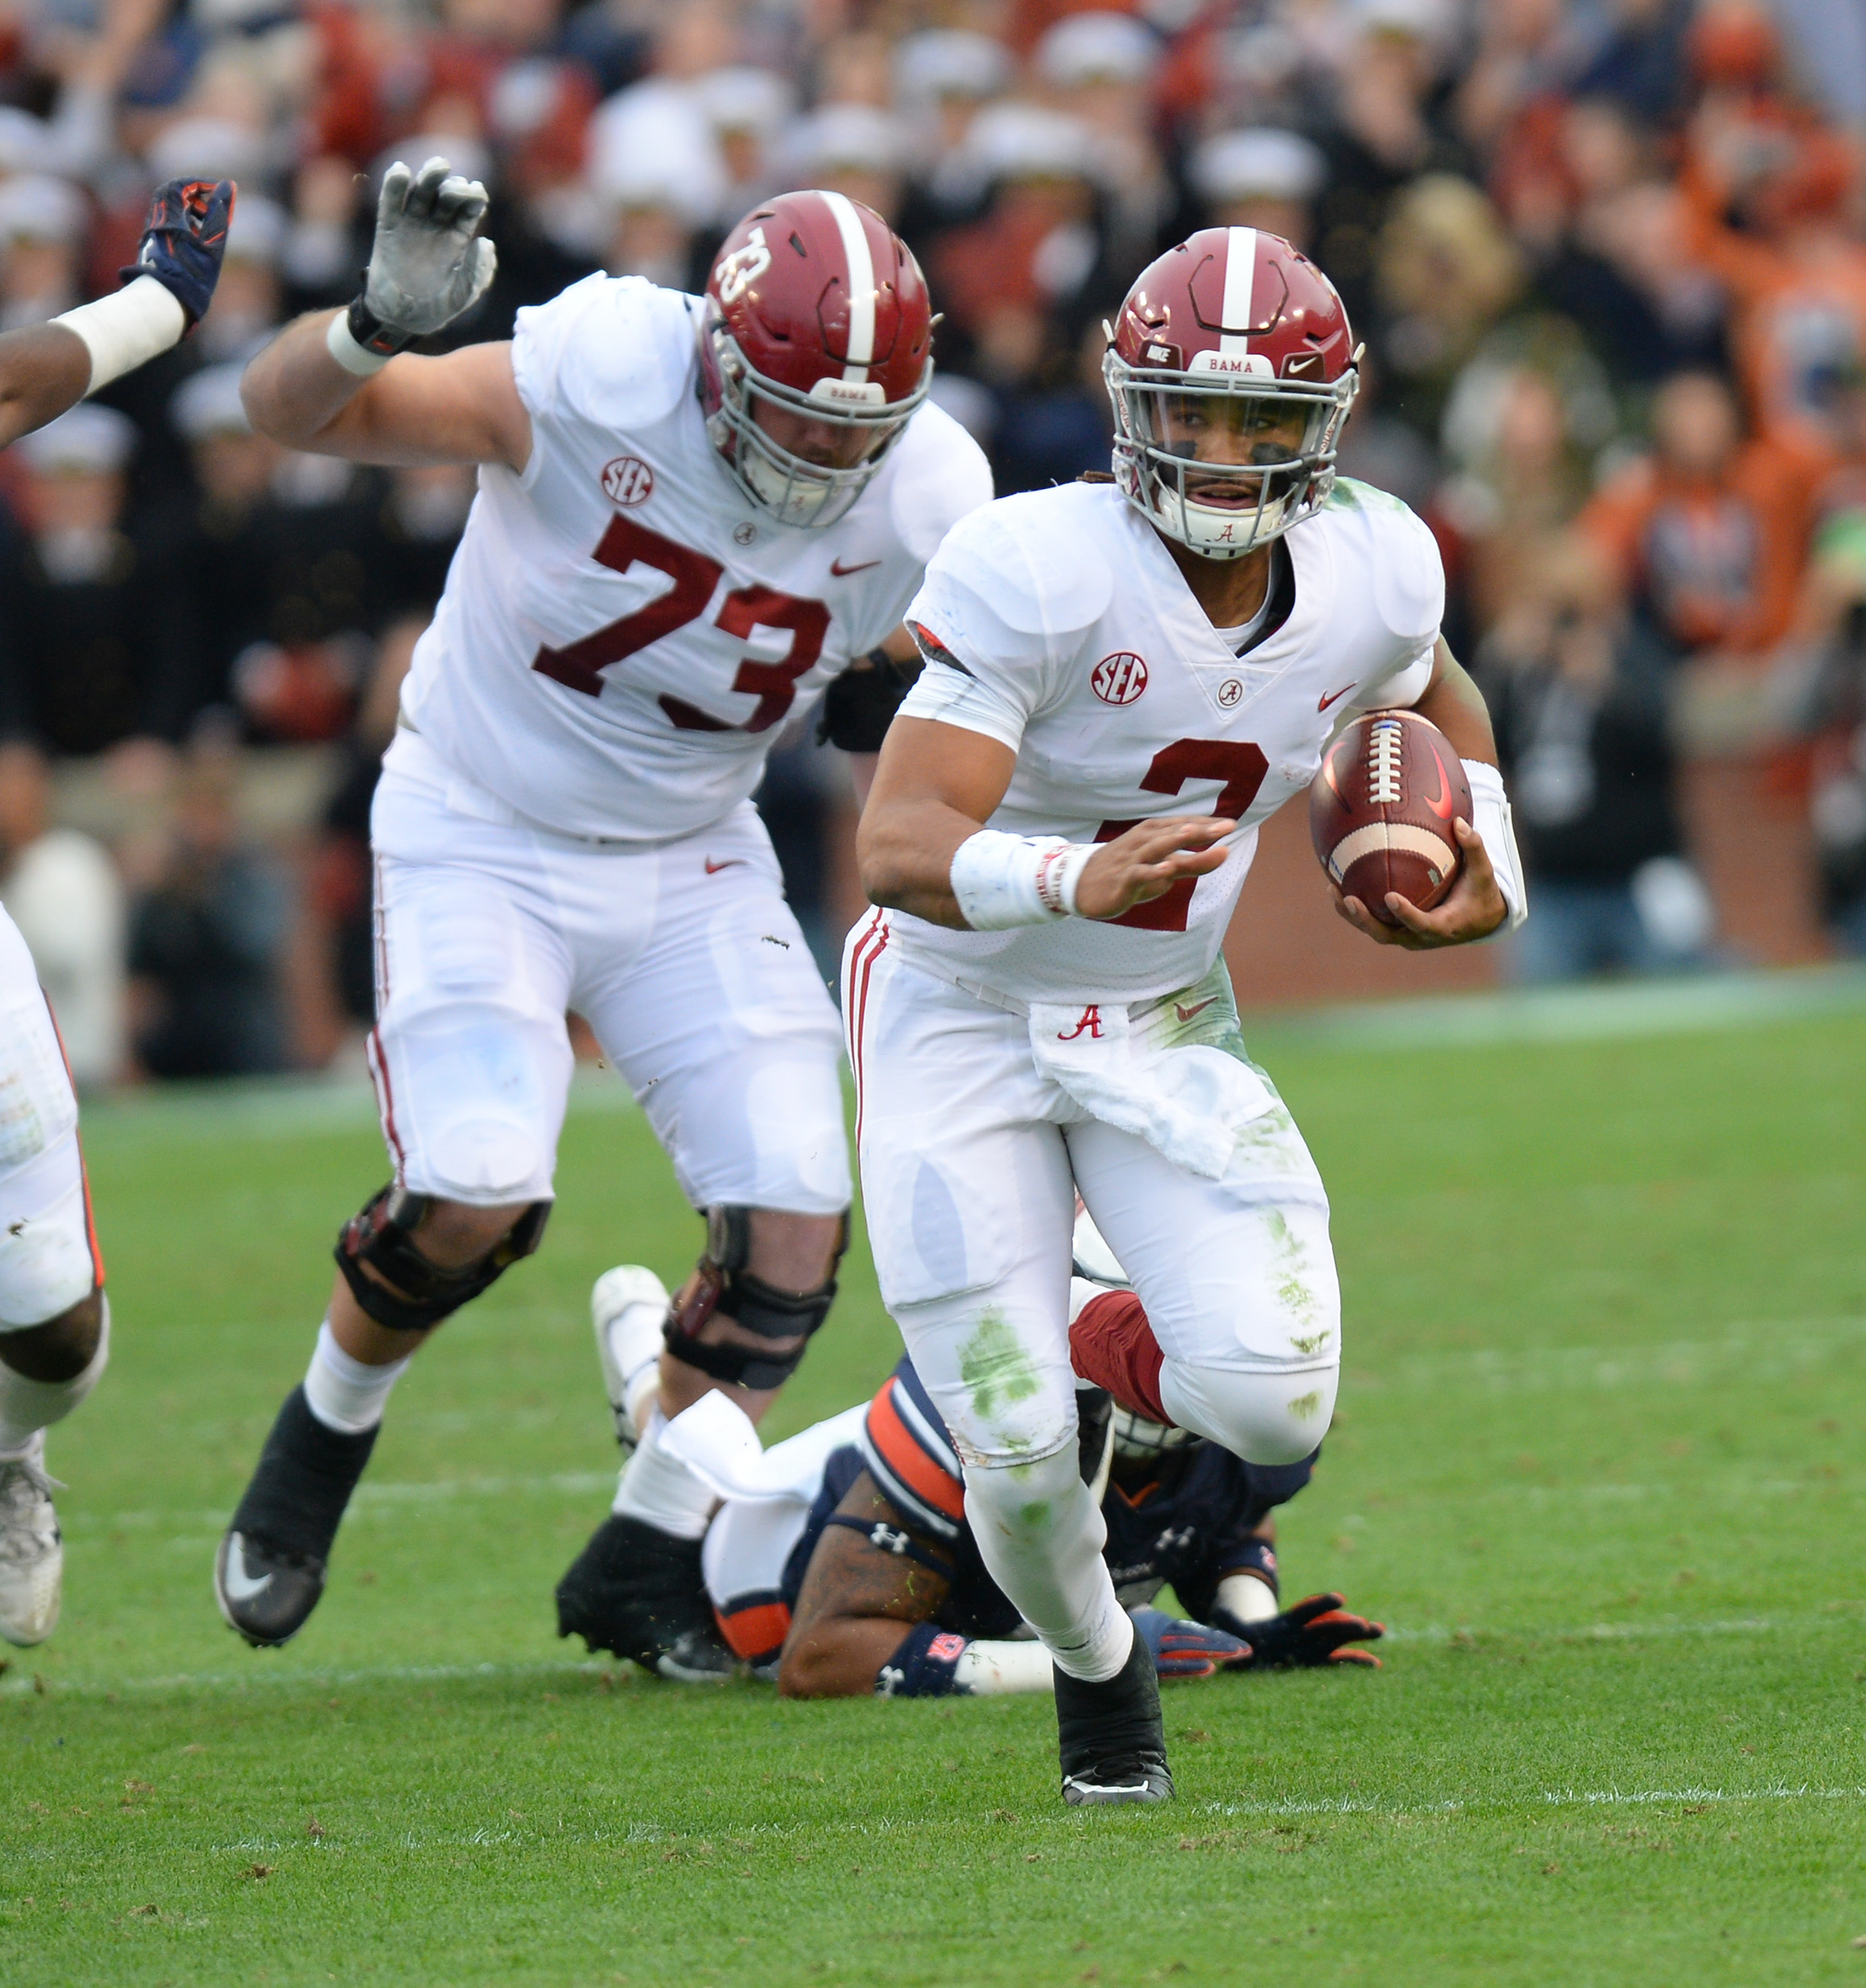 Alabama Crimson Tide quarterback Jalen Hurts (2) runs during the first half of Saturday's game, at Jordan-Hare Stadium.